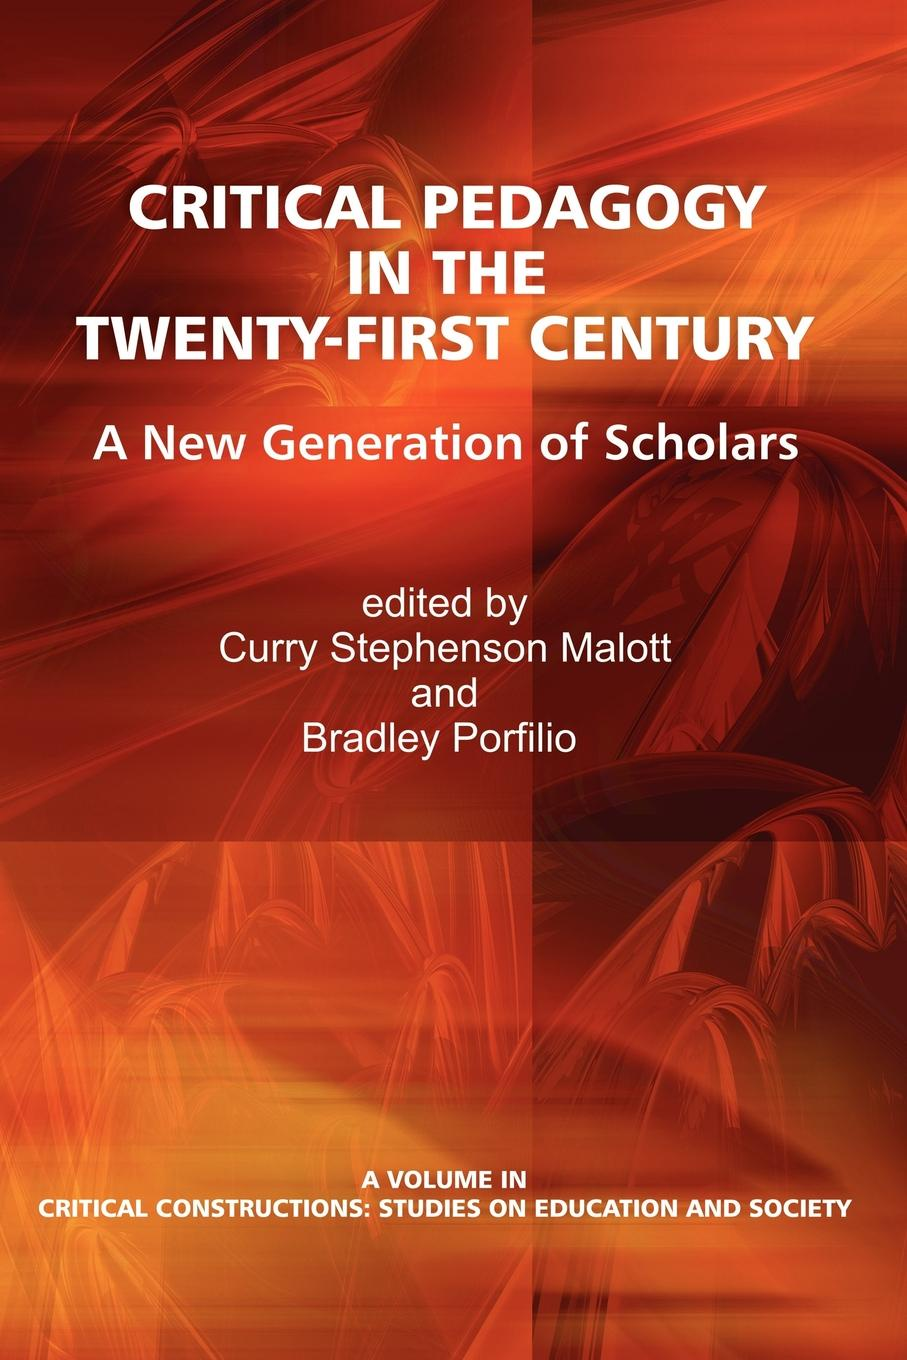 купить Critical Pedagogy in the Twenty-First Century. A New Generation of Scholars онлайн